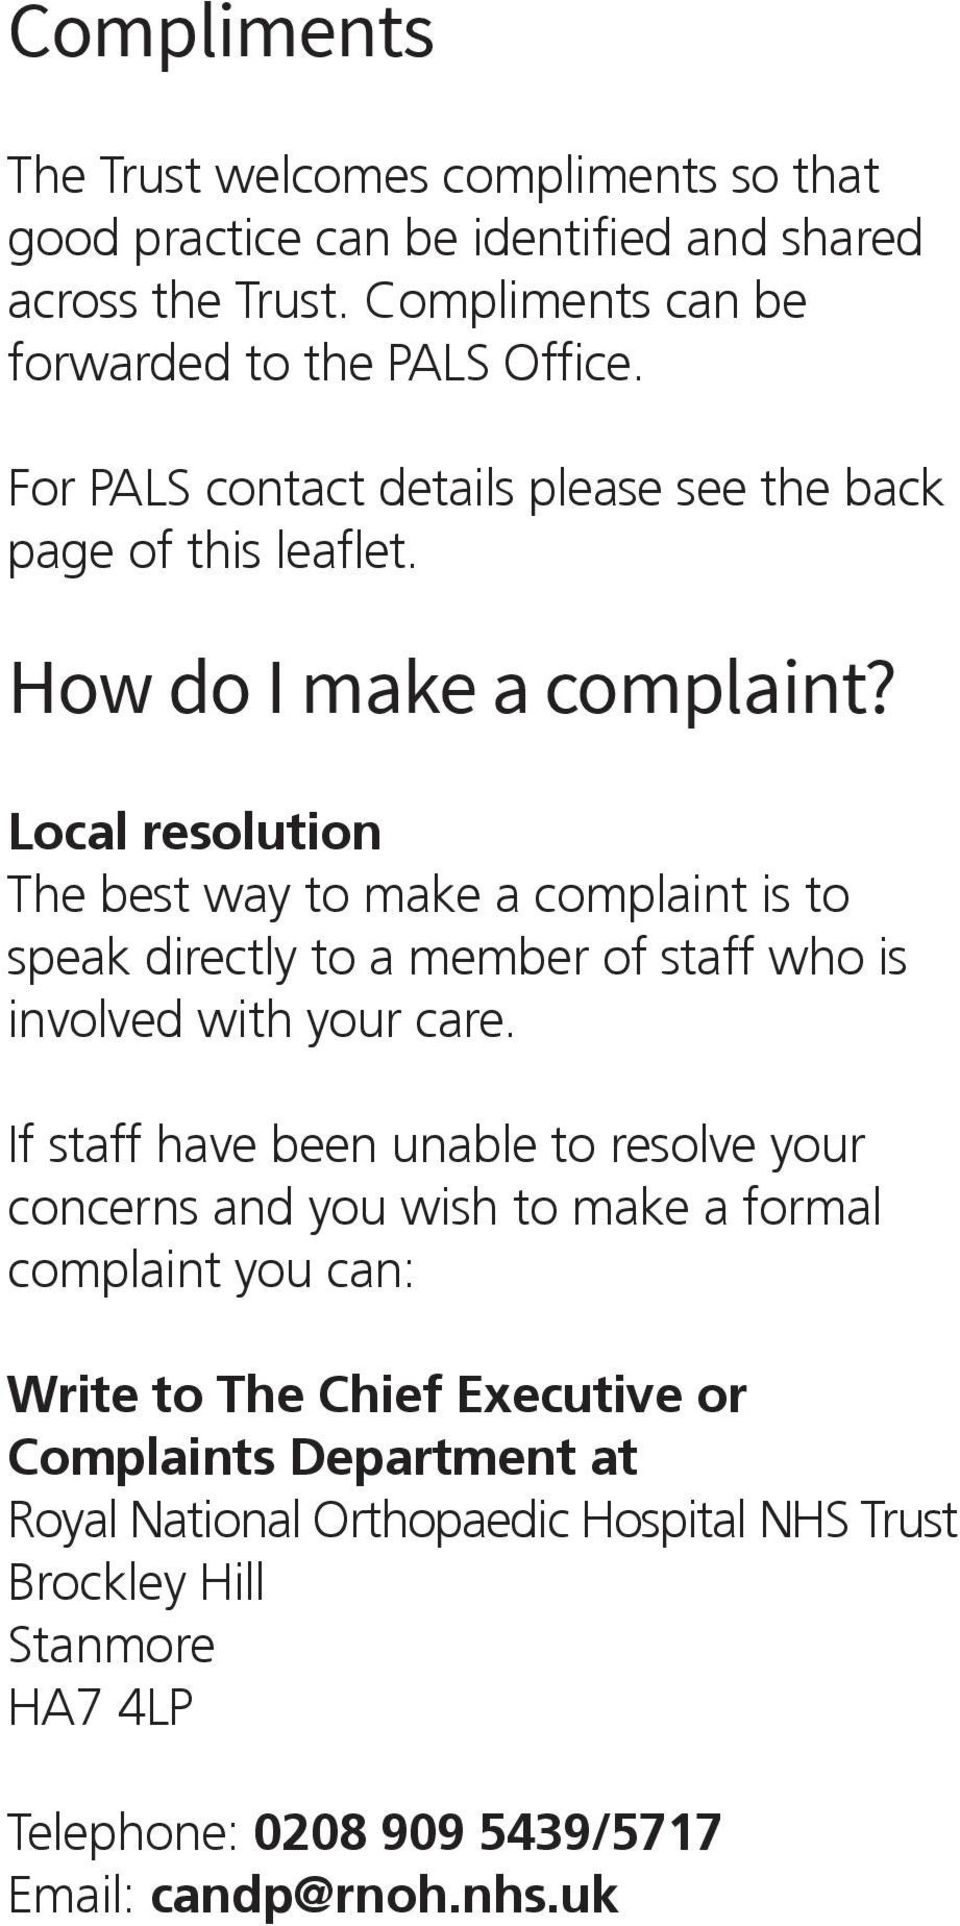 Local resolution The best way to make a complaint is to speak directly to a member of staff who is involved with your care.